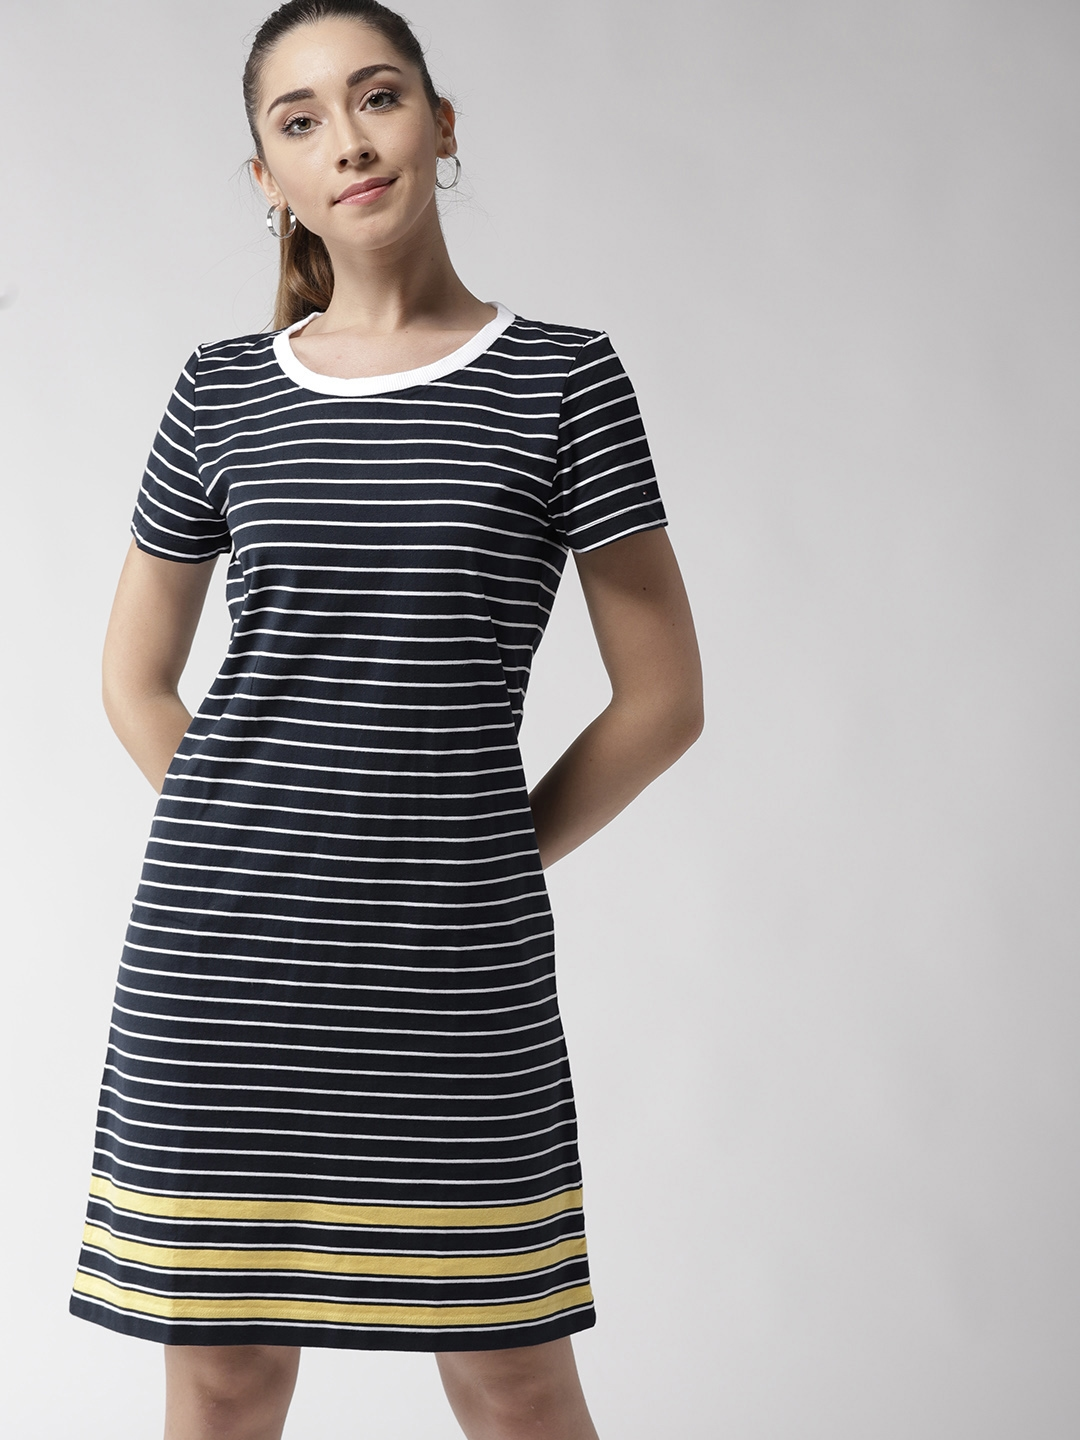 daf6fabe6803 Buy Tommy Hilfiger Women Navy Blue   White Striped T Shirt Dress ...